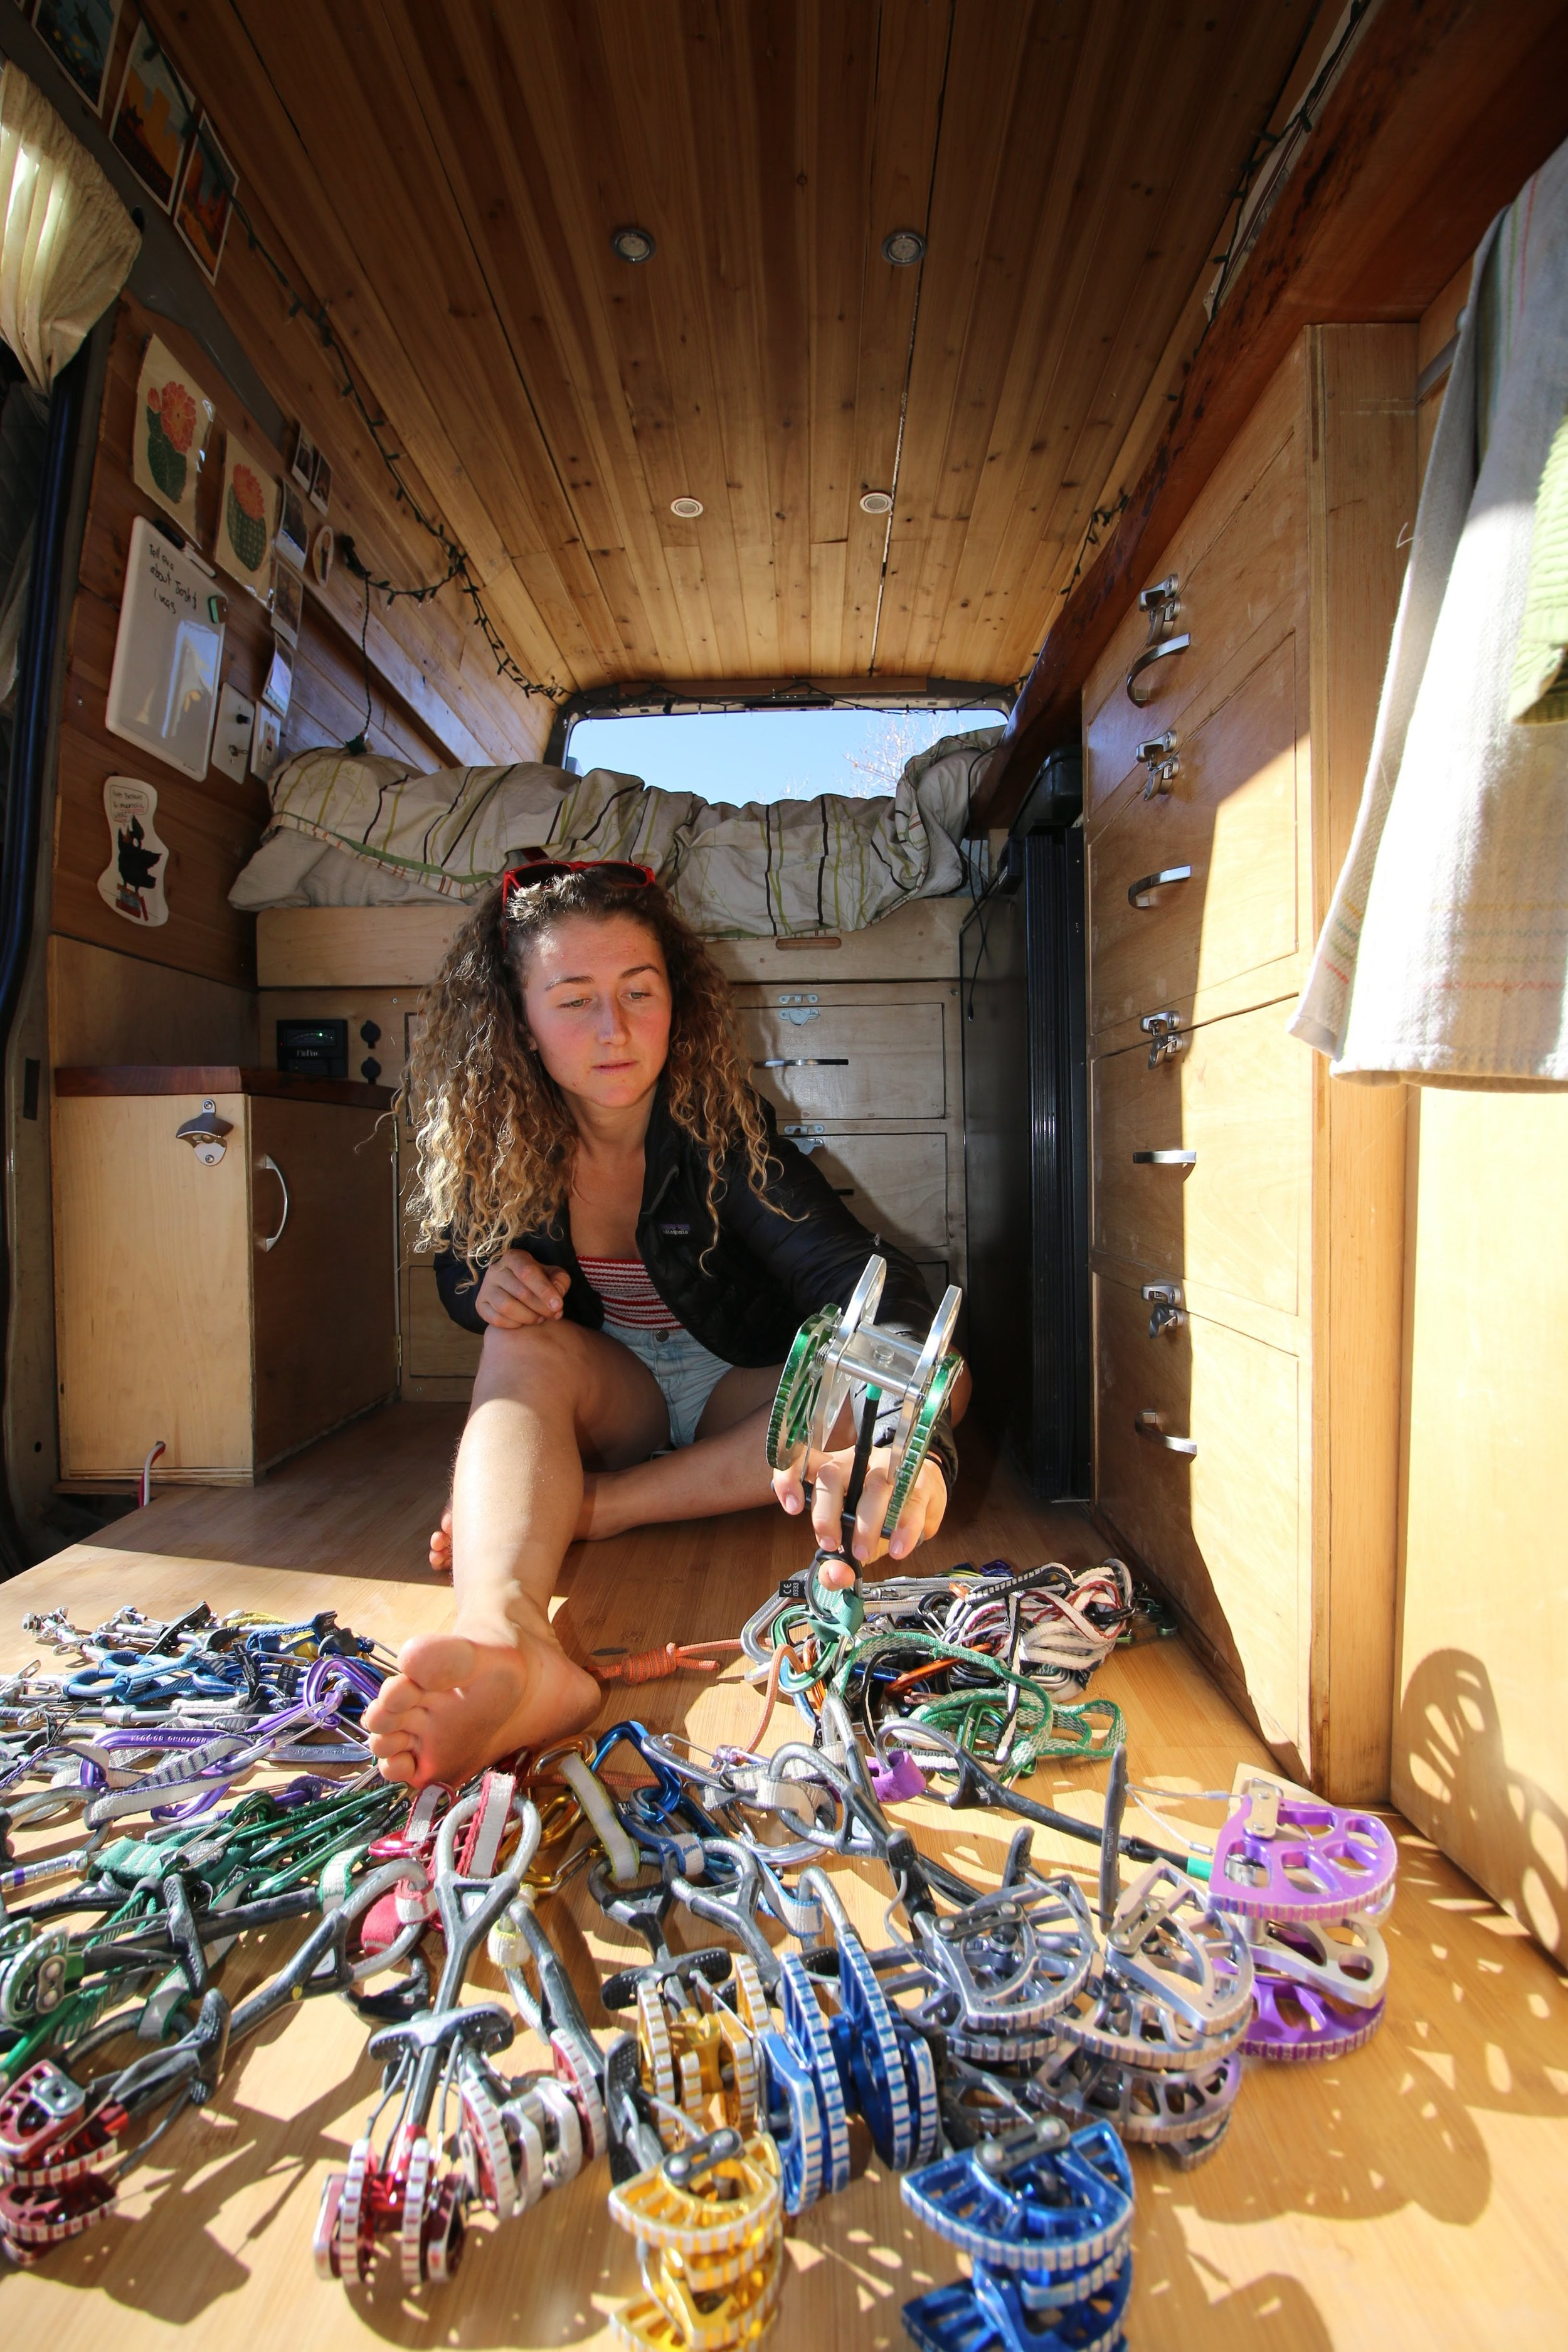 One Chick Travels in van with Cams